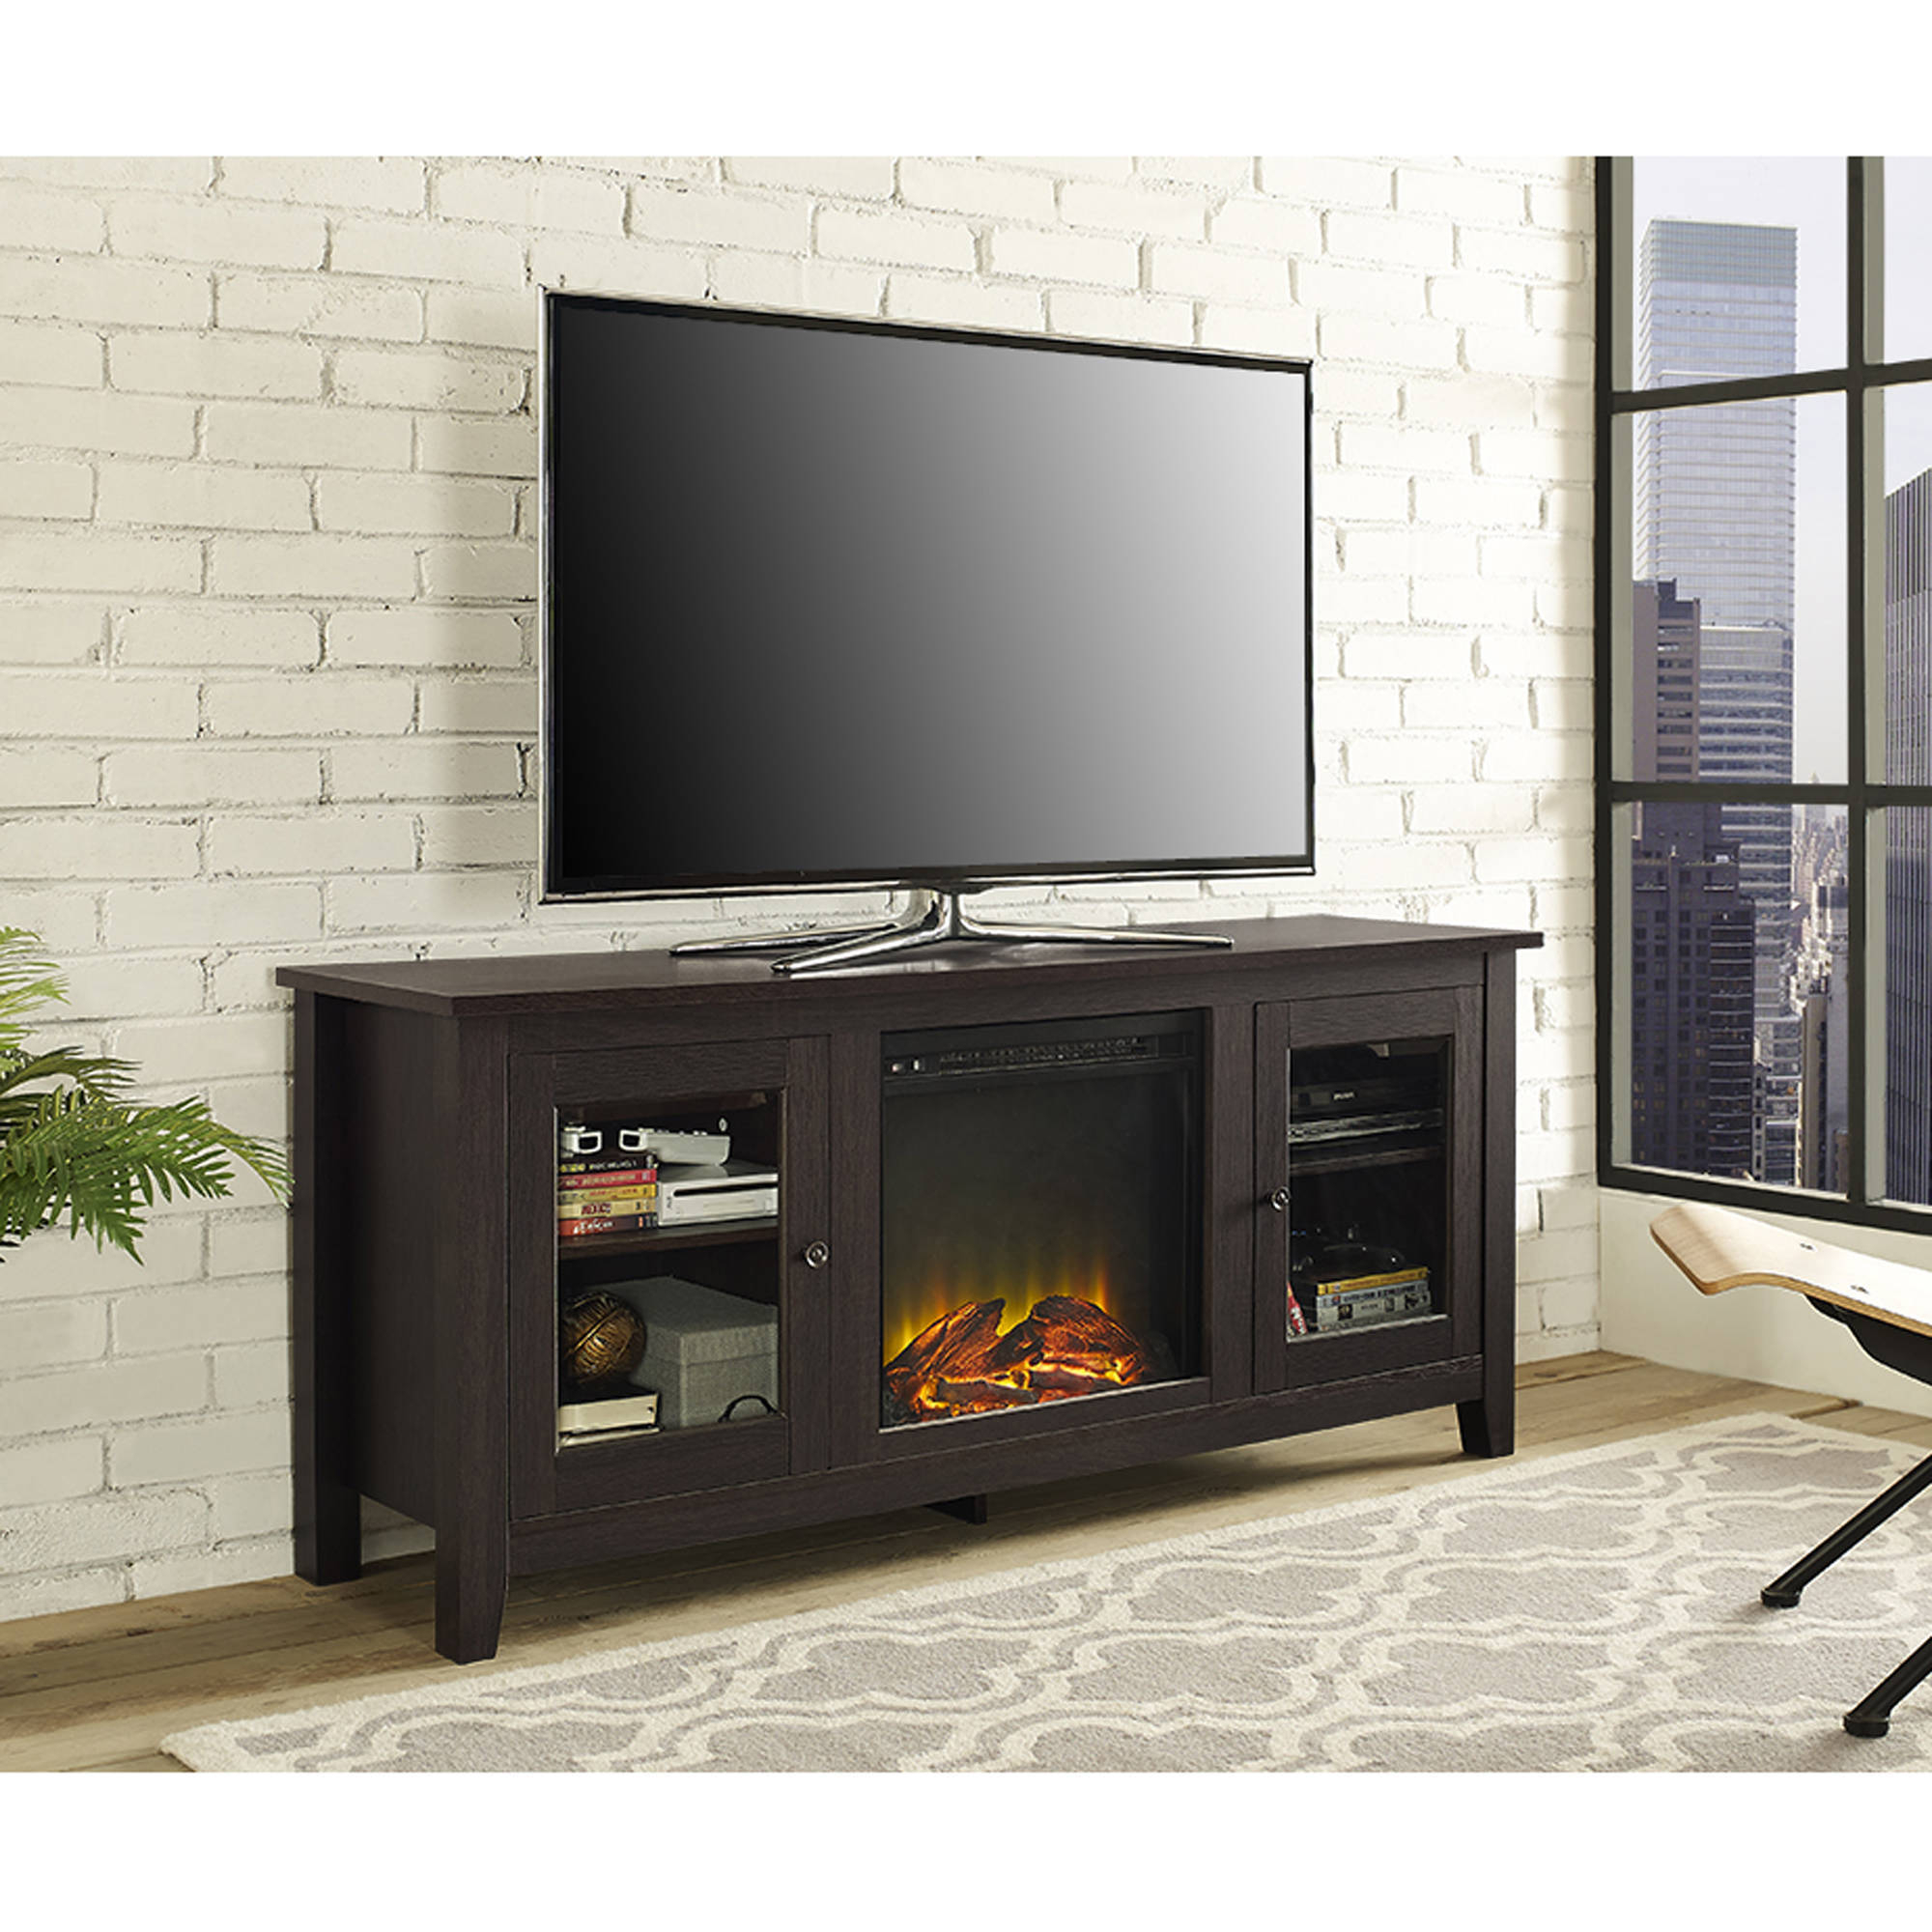 Console Tables Under Wall Mounted Tv Inside 2018 Tv Stands & Entertainment Centers – Walmart (View 7 of 20)